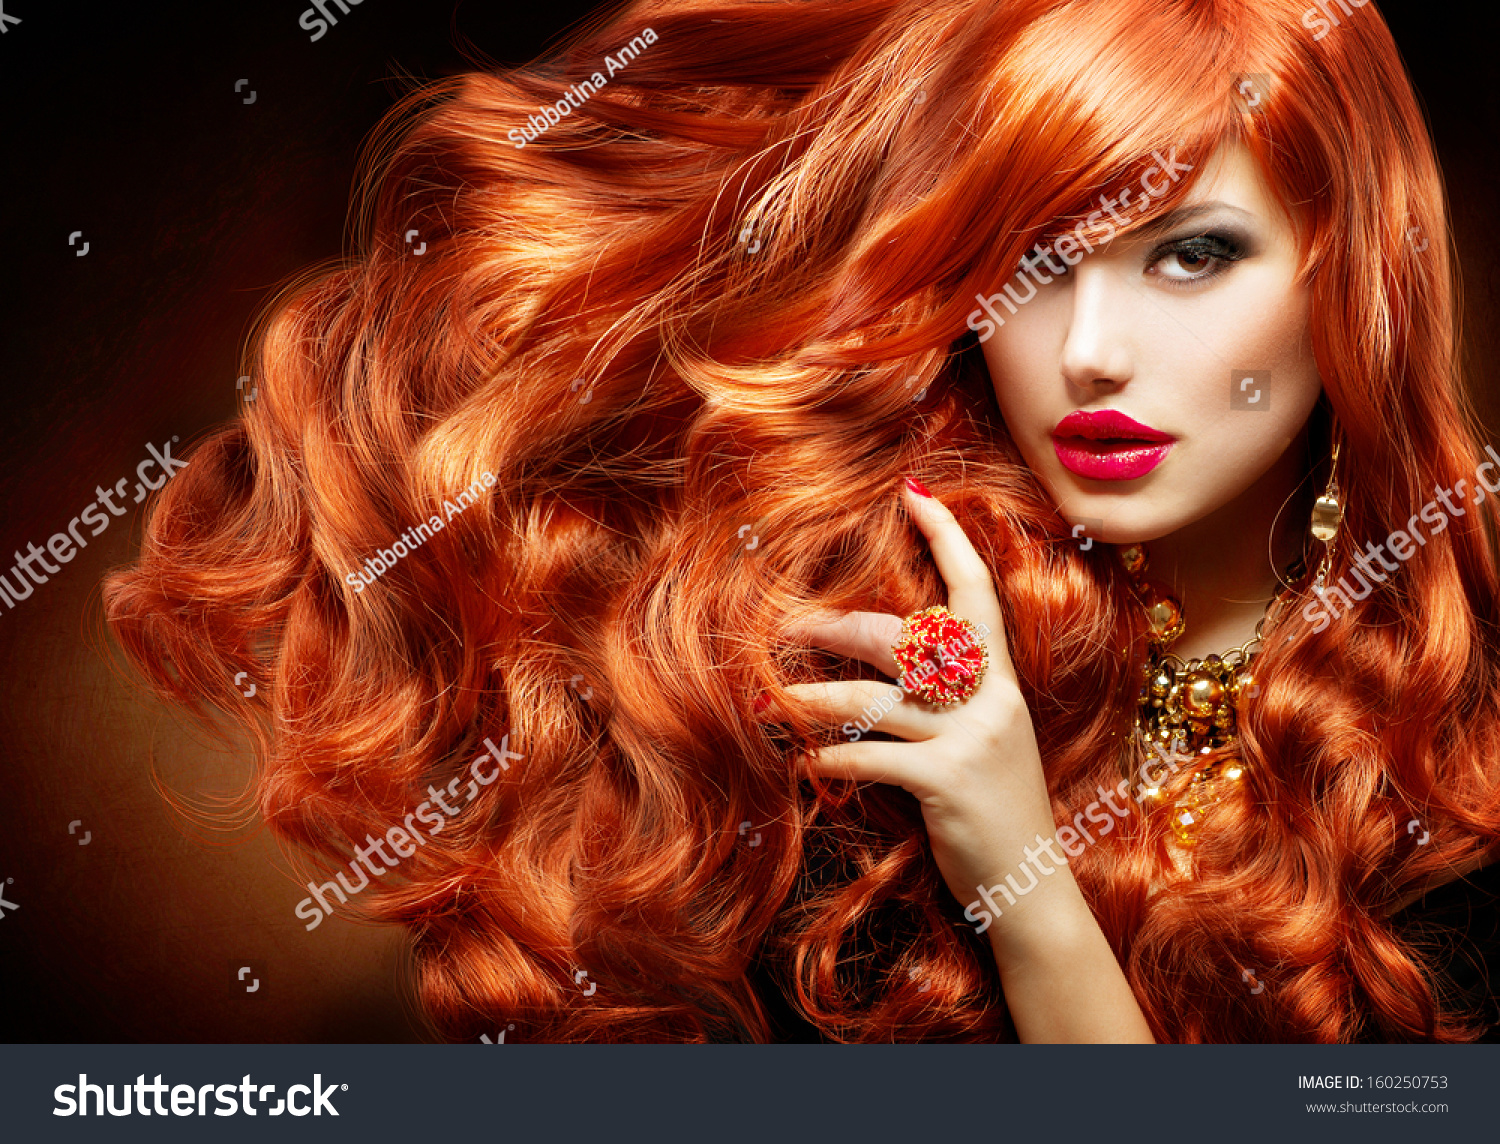 Red Extensions Of Me Download 16